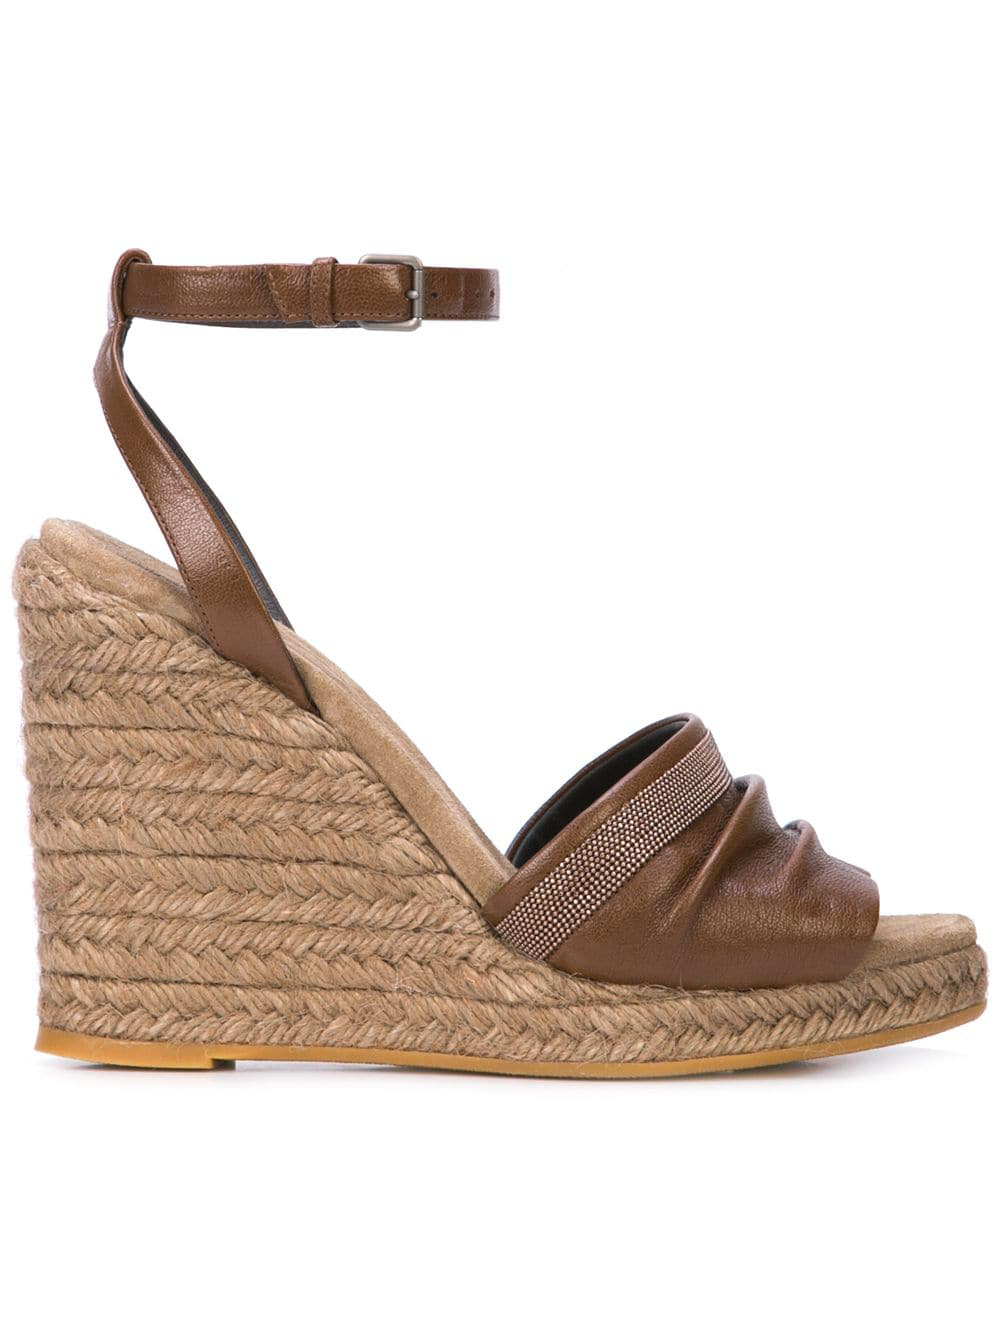 6040c8143a22 Brunello Cucinelli Wedge Espadrille Sandals - Brown